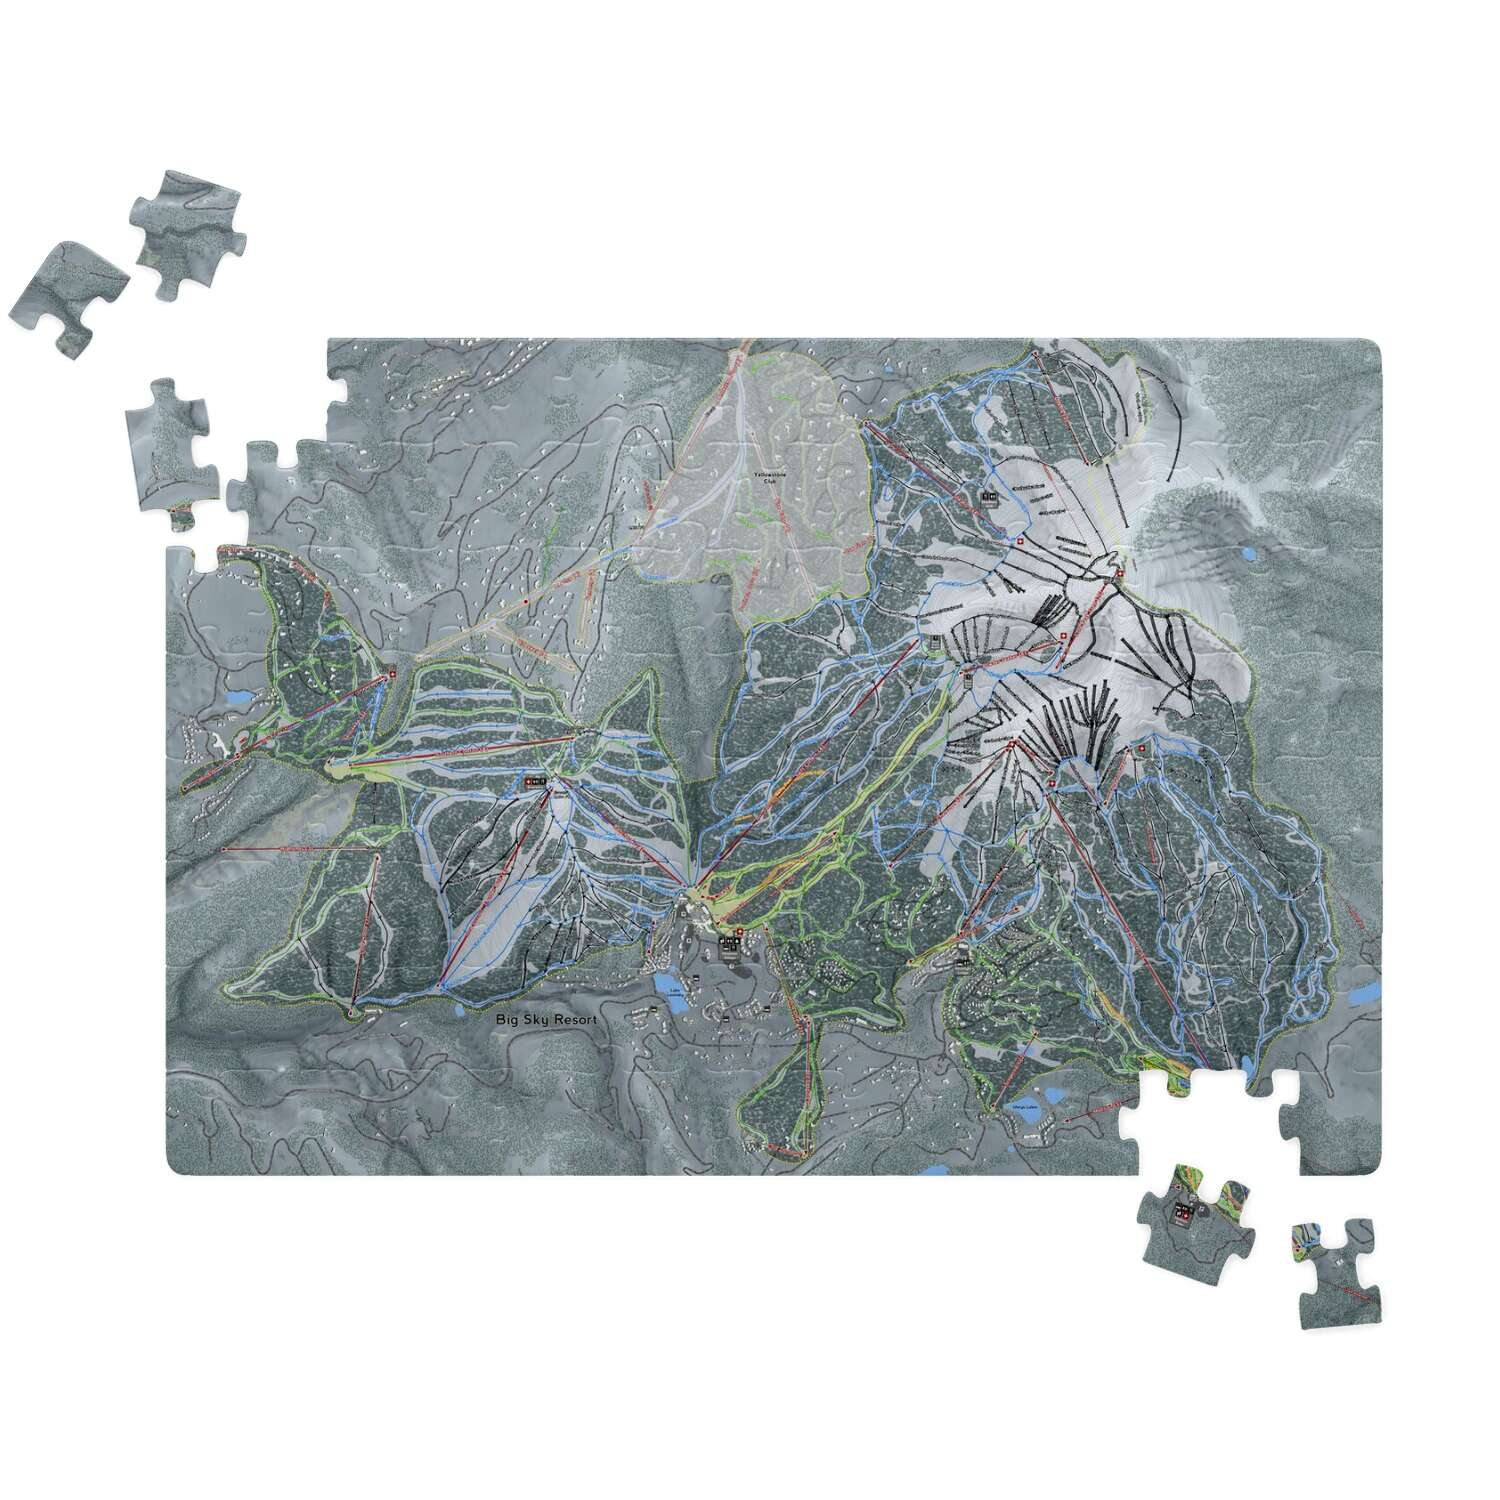 Big Sky Montana Ski Resort Map Puzzle